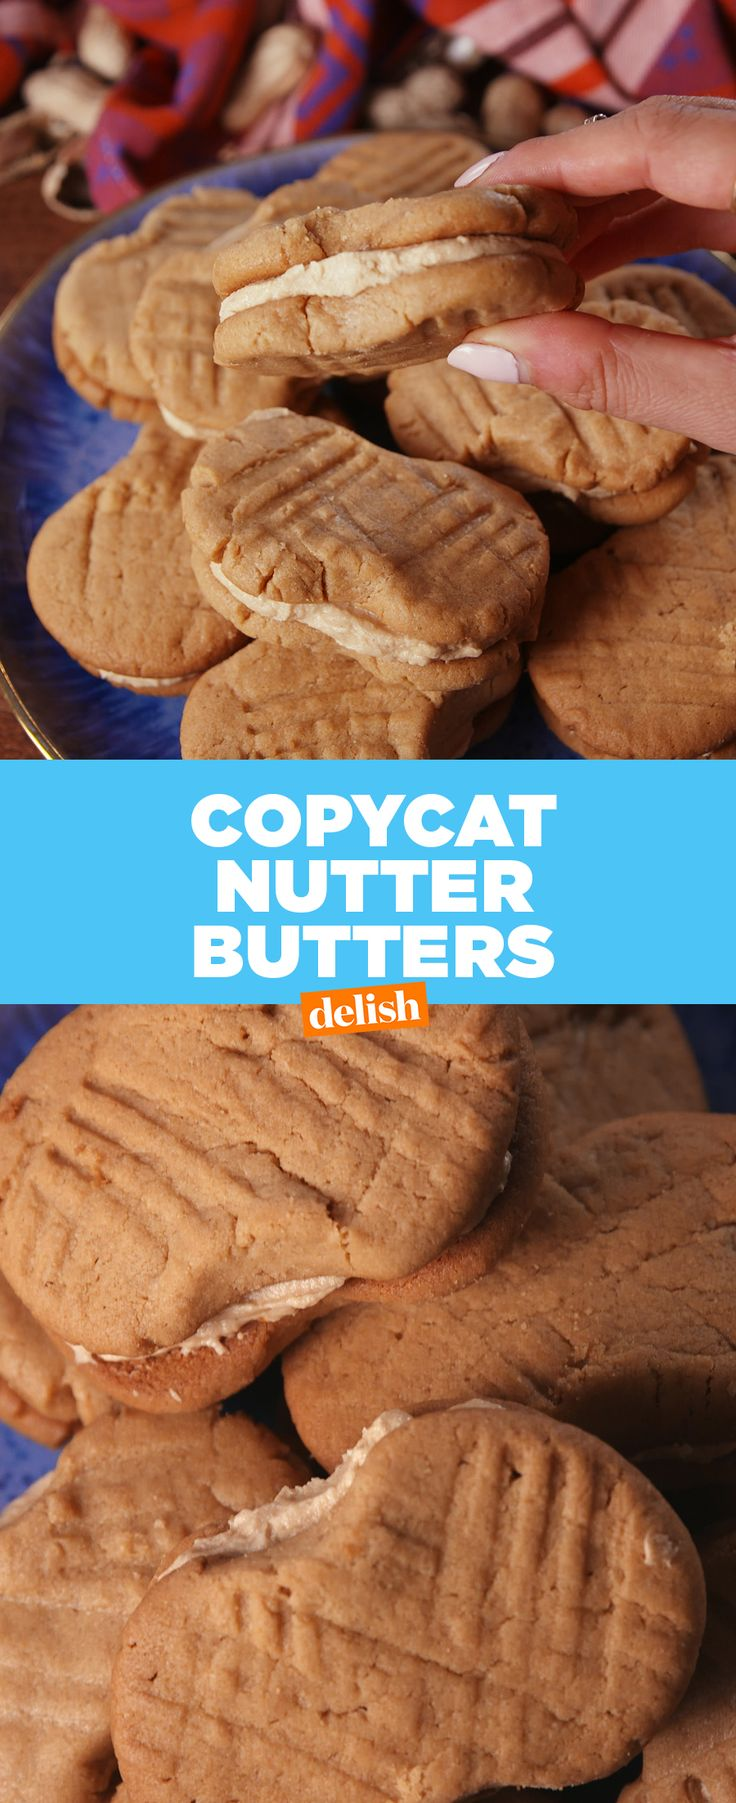 Peanut butter lovers, these cookies are like Nutter Butter's on steroids. Get the recipe from Delish.com.